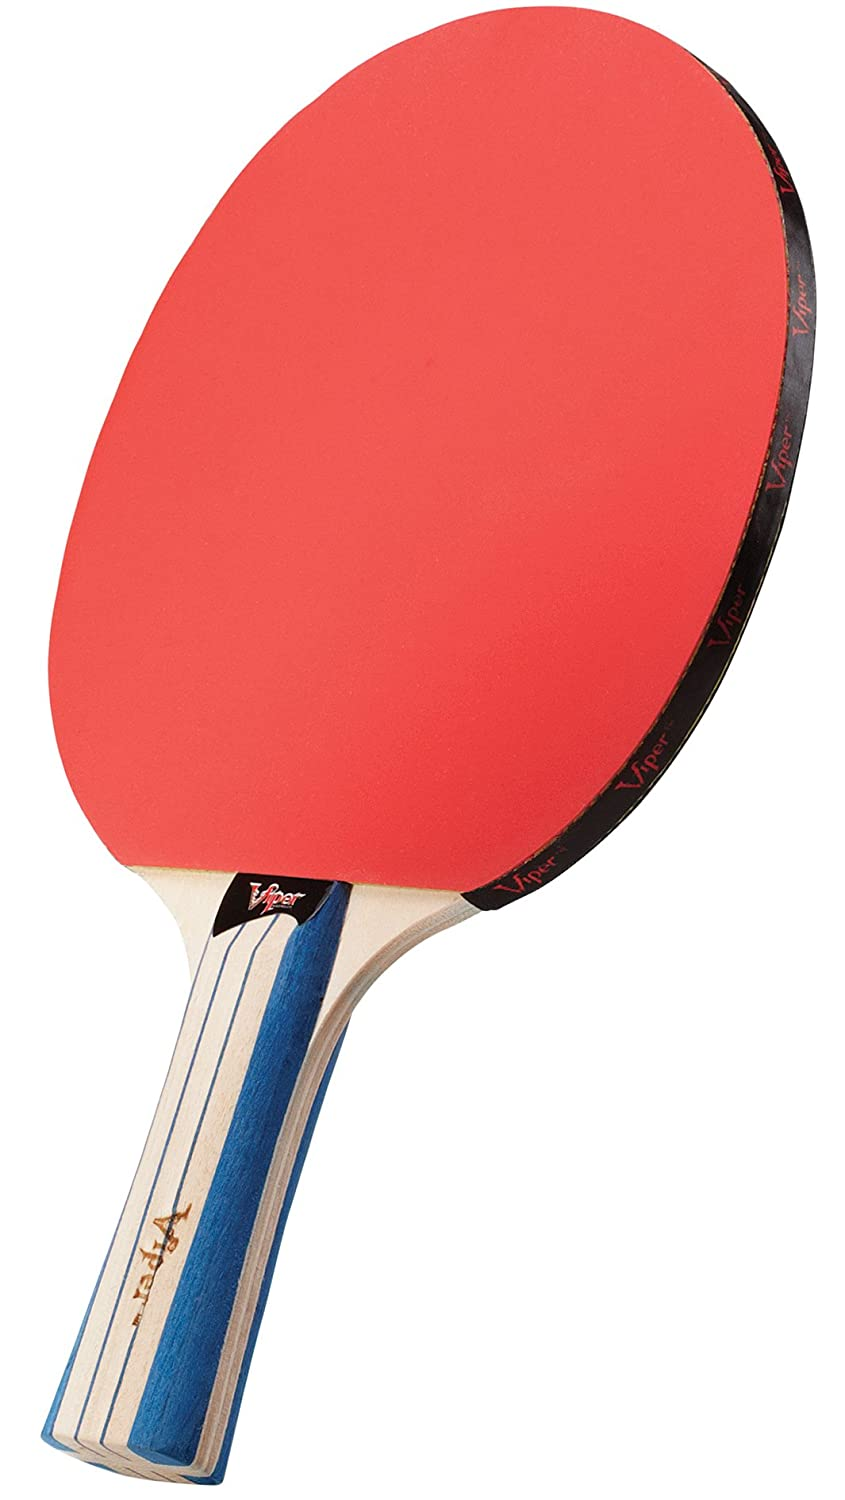 Viper Table Tennis Max Momentum Racket/Paddle GLd Products 70-3015